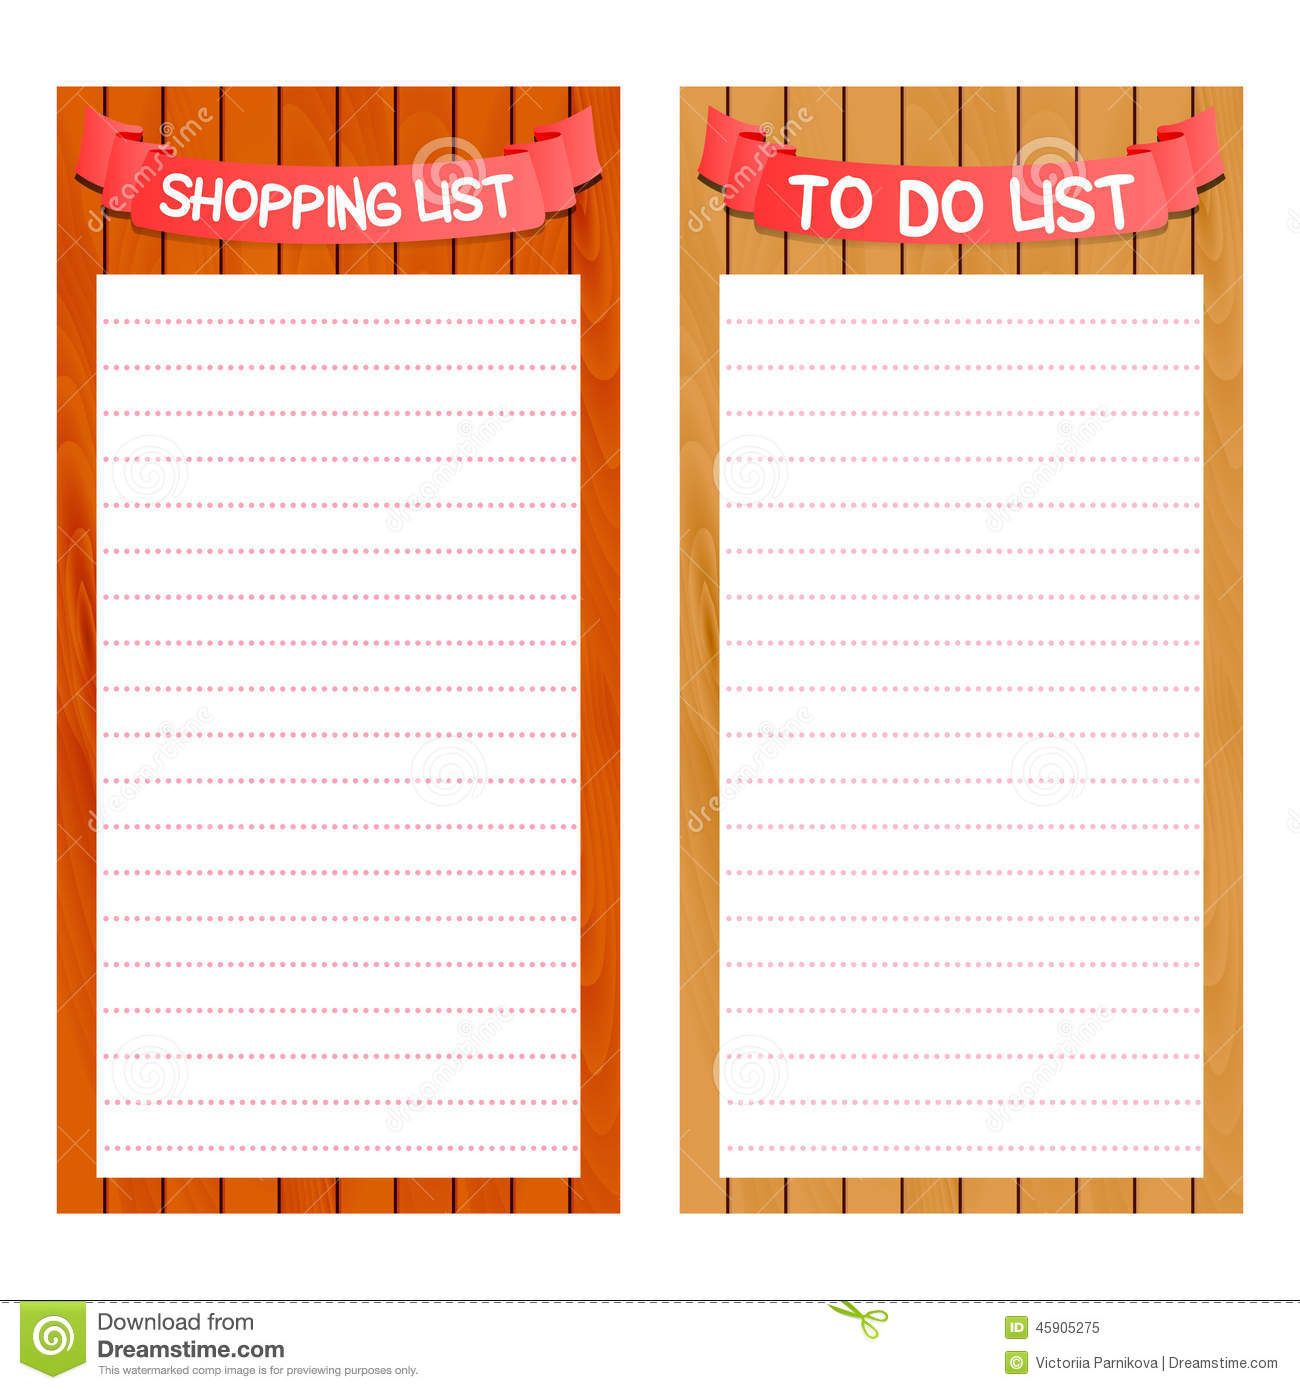 shopping list template - kak2tak.tk